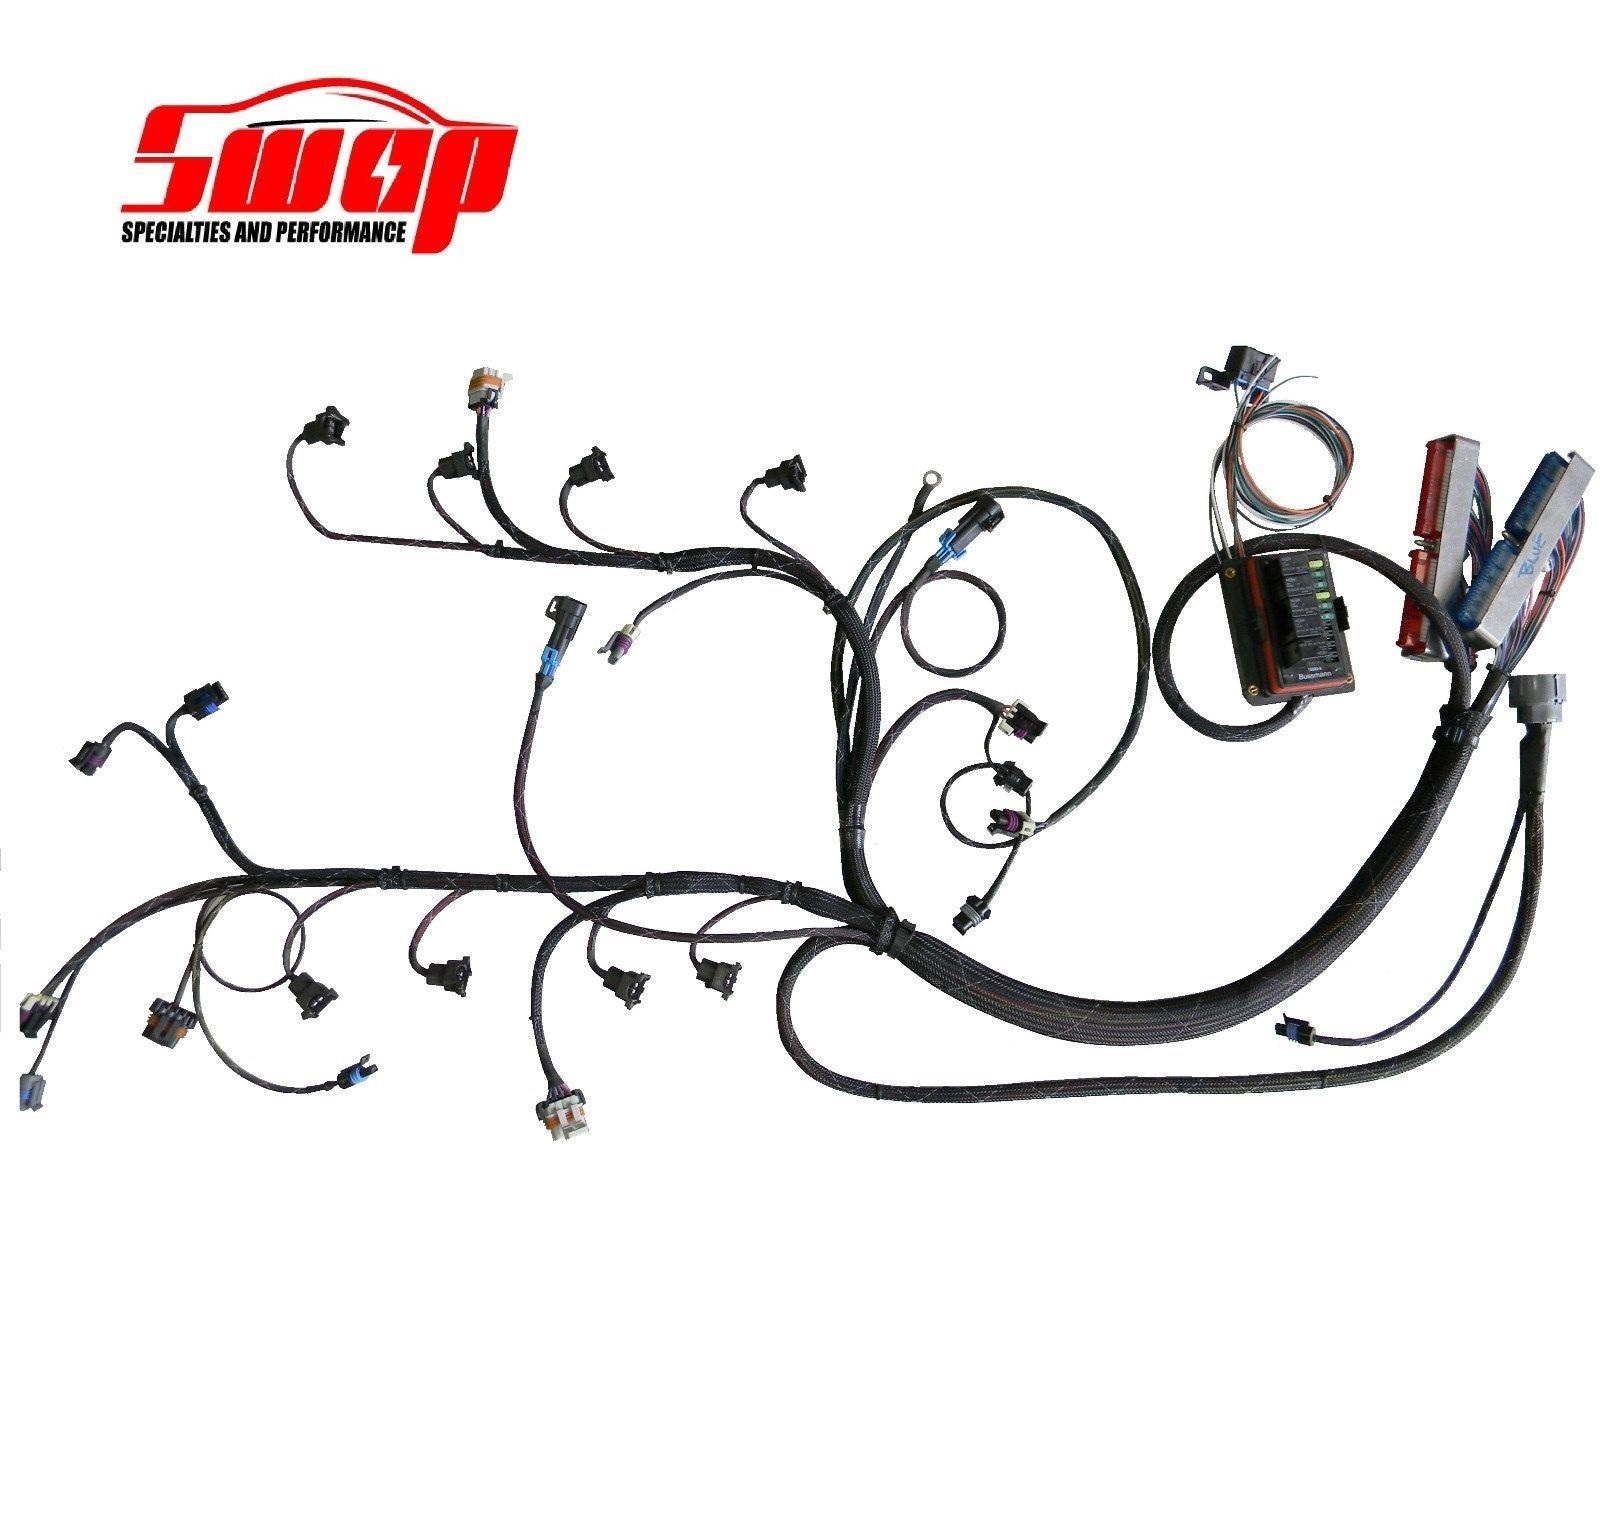 Ac Wiring Harness Conversion With Ls1 Real Diagram S10 2 4 Ecotec Stand Alone 37 Engine